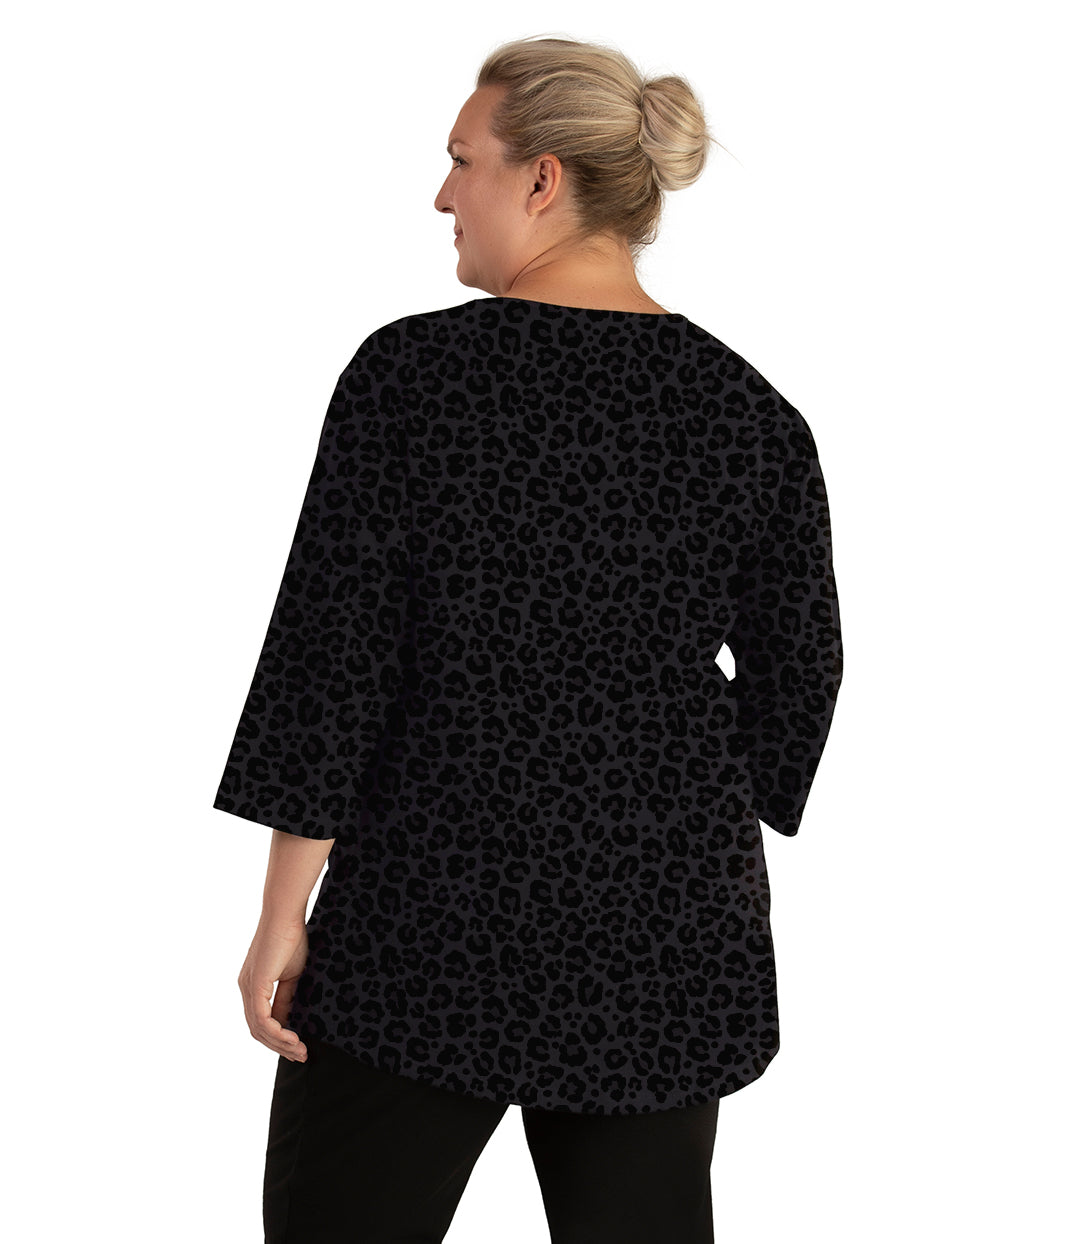 Stretch Naturals Scoop Neck 3/4 Sleeve Top Deep Leopard Print-Tops 3/4 Sleeve-Hop Wo Trading Co Ltd-XL-Deep Leopard Print-JunoActive